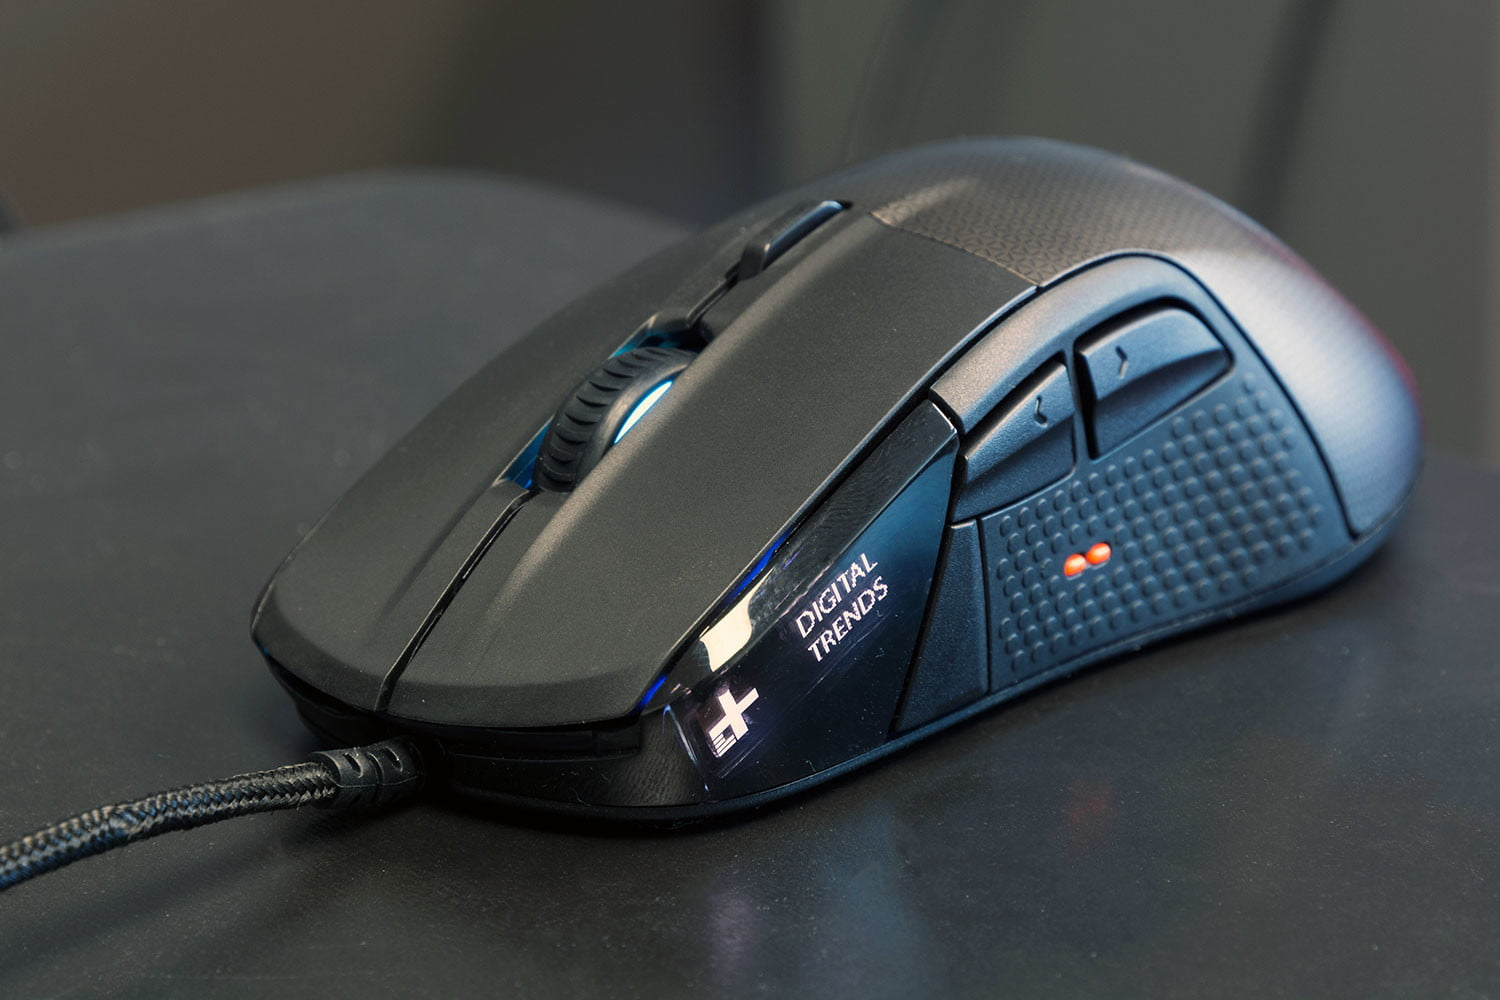 steelseries-rival-700-mouse-front-1500x1